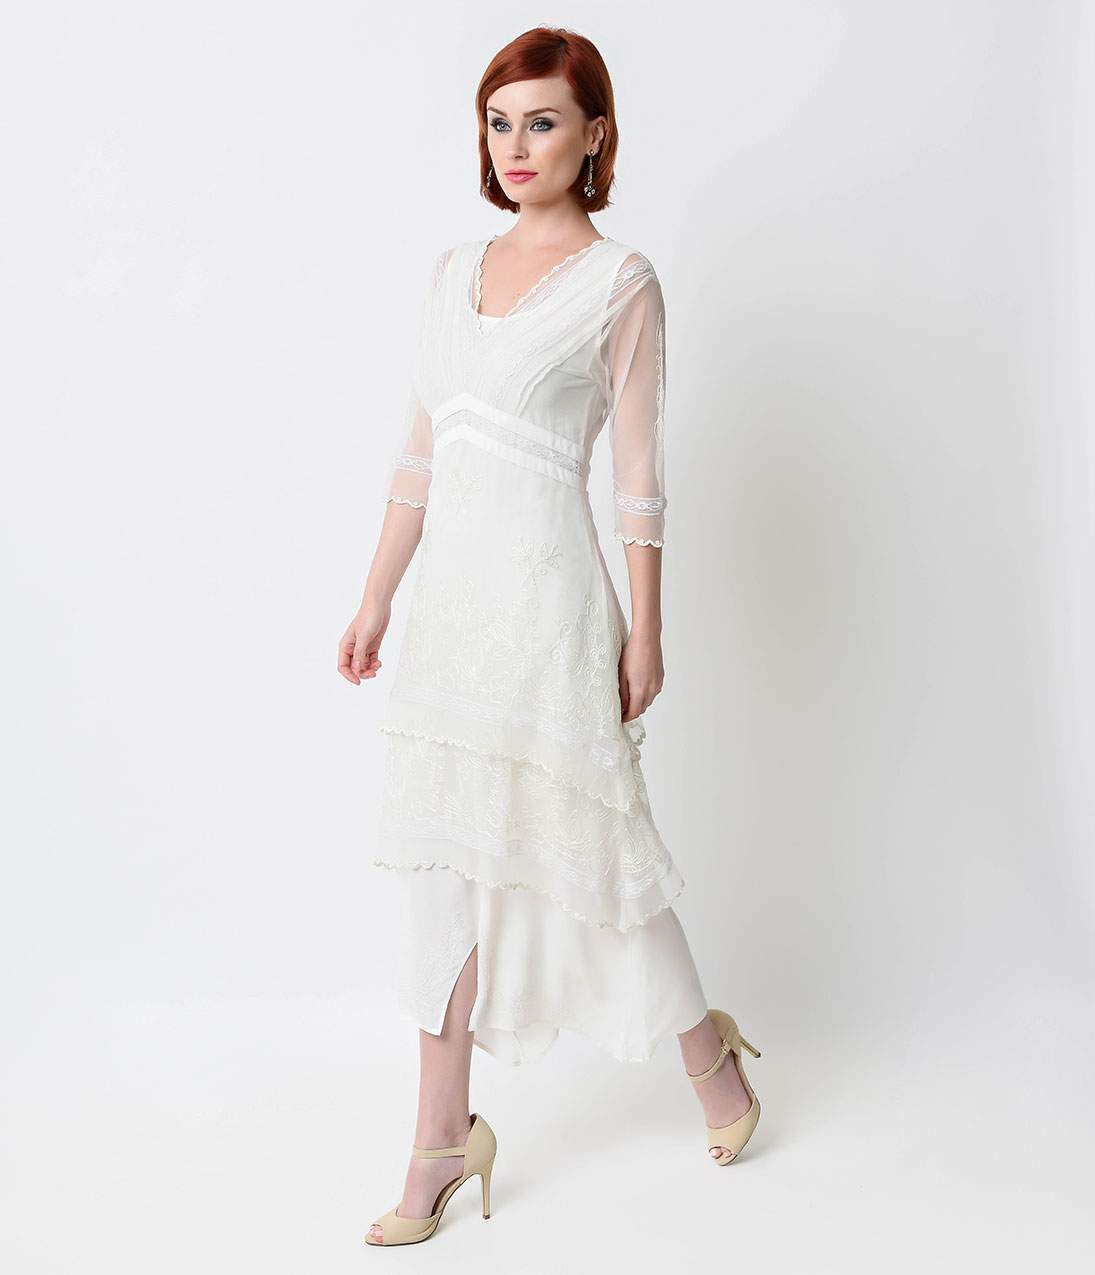 1920s Afternoon Dresses, Tea Dresses Nataya 1930S White Embroidered Titanic Tulle Tea Length Dress $99.00 AT vintagedancer.com